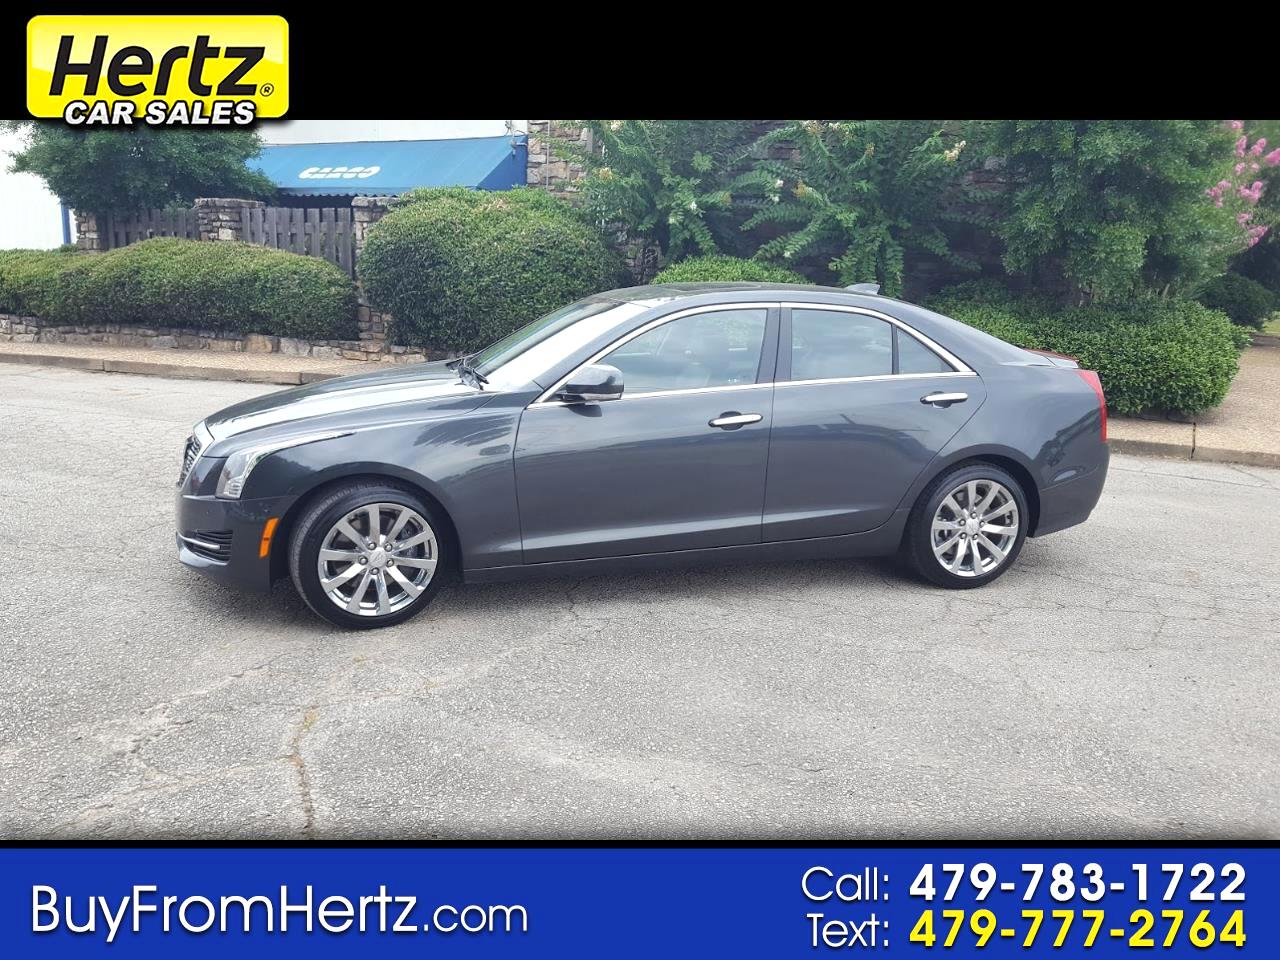 2018 Cadillac ATS Sedan 4dr Sdn 2.0L Luxury RWD